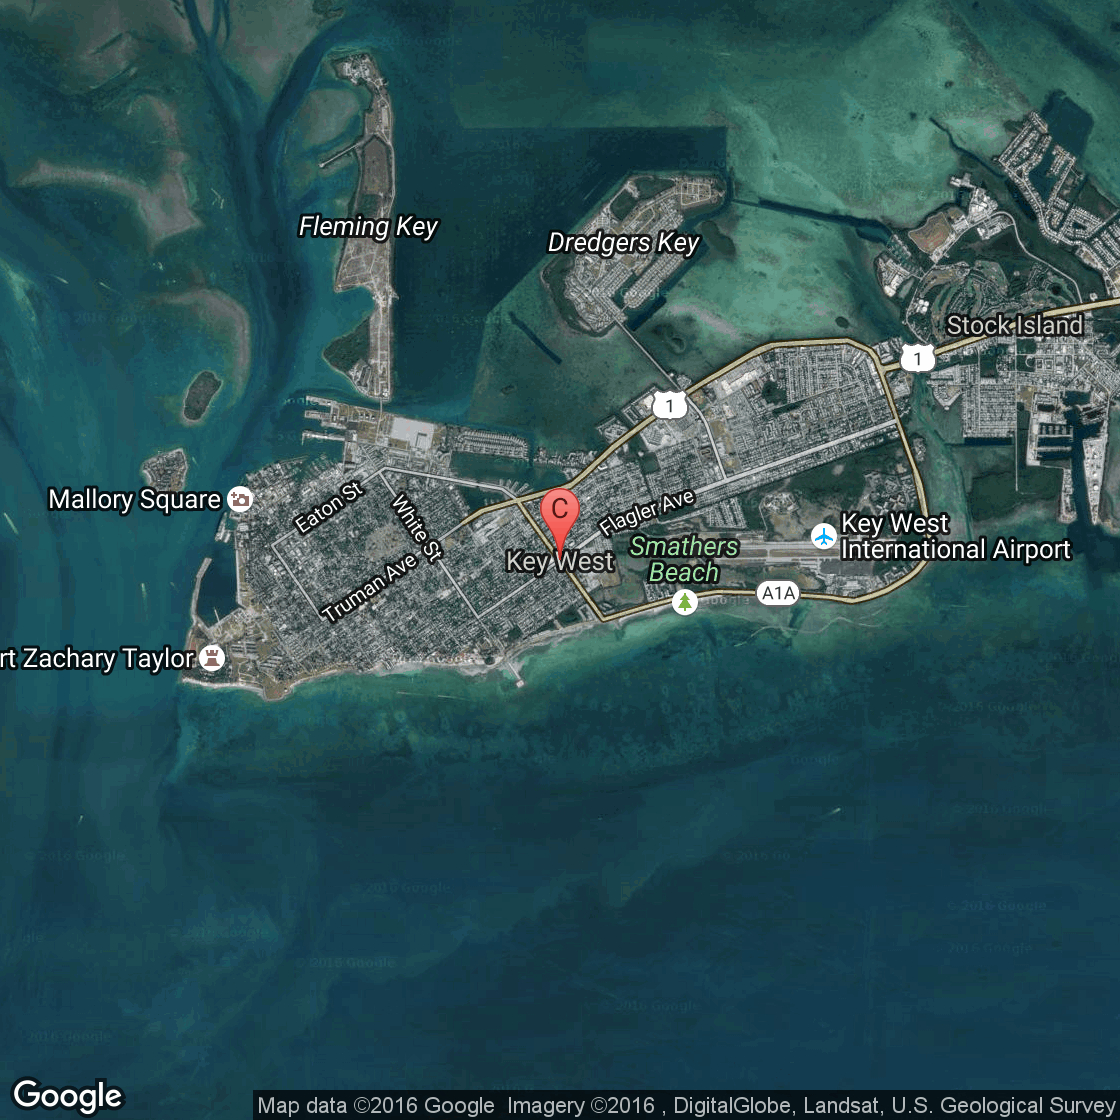 Hotels Near Mallory Square, Key West   Usa Today - Map Of Hotels In Key West Florida